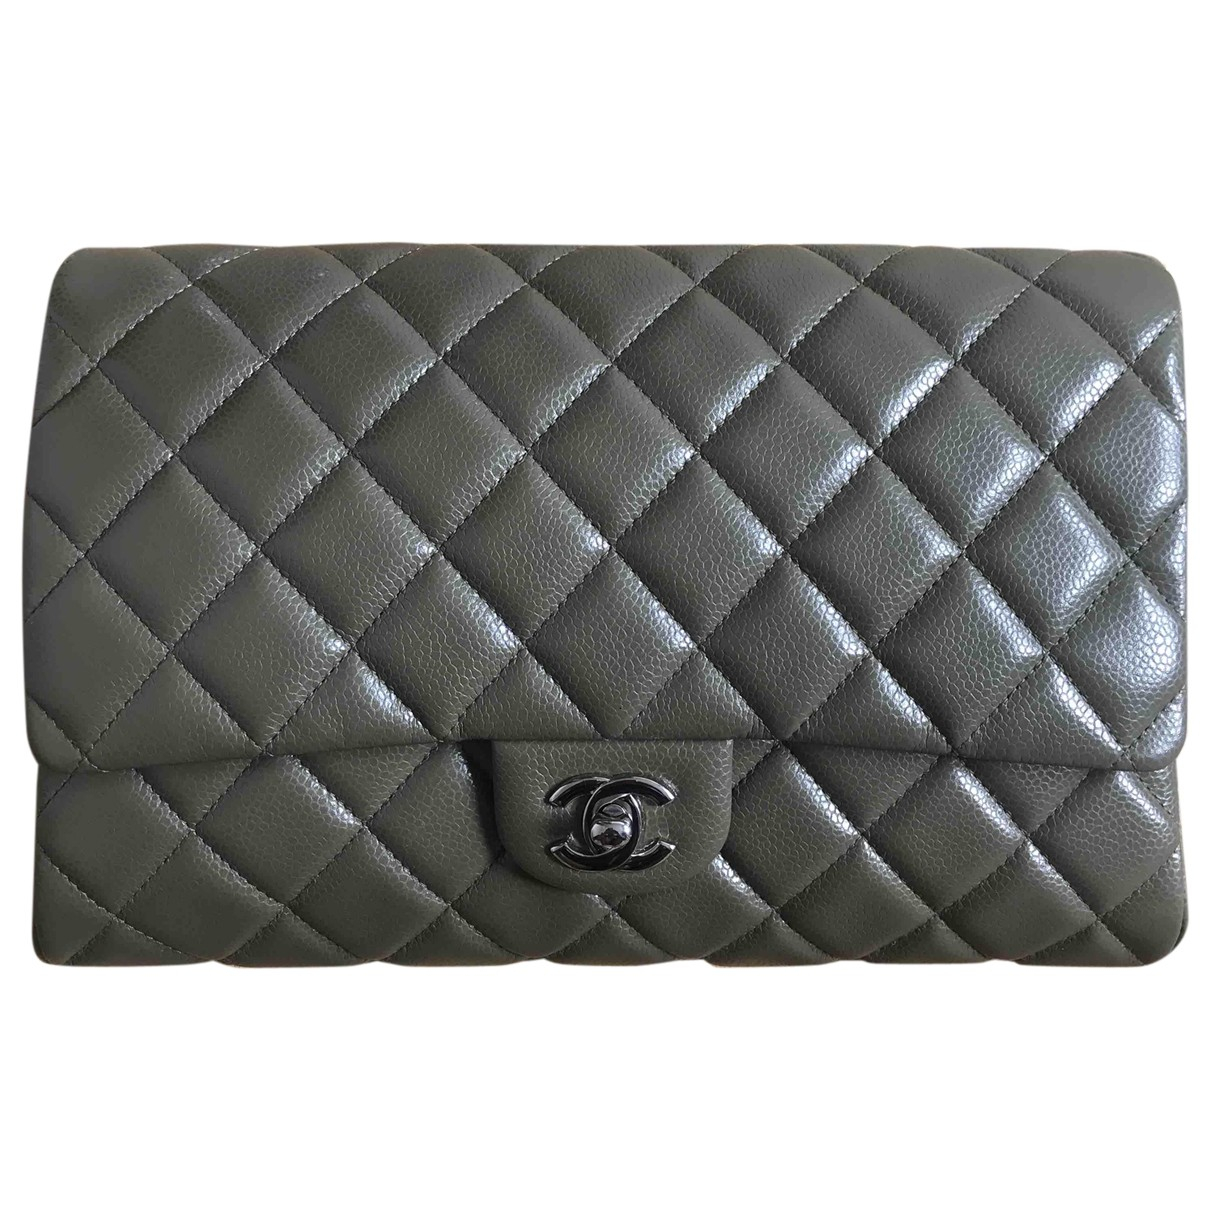 Chanel Timeless/Classique Khaki Leather Clutch bag for Women \N